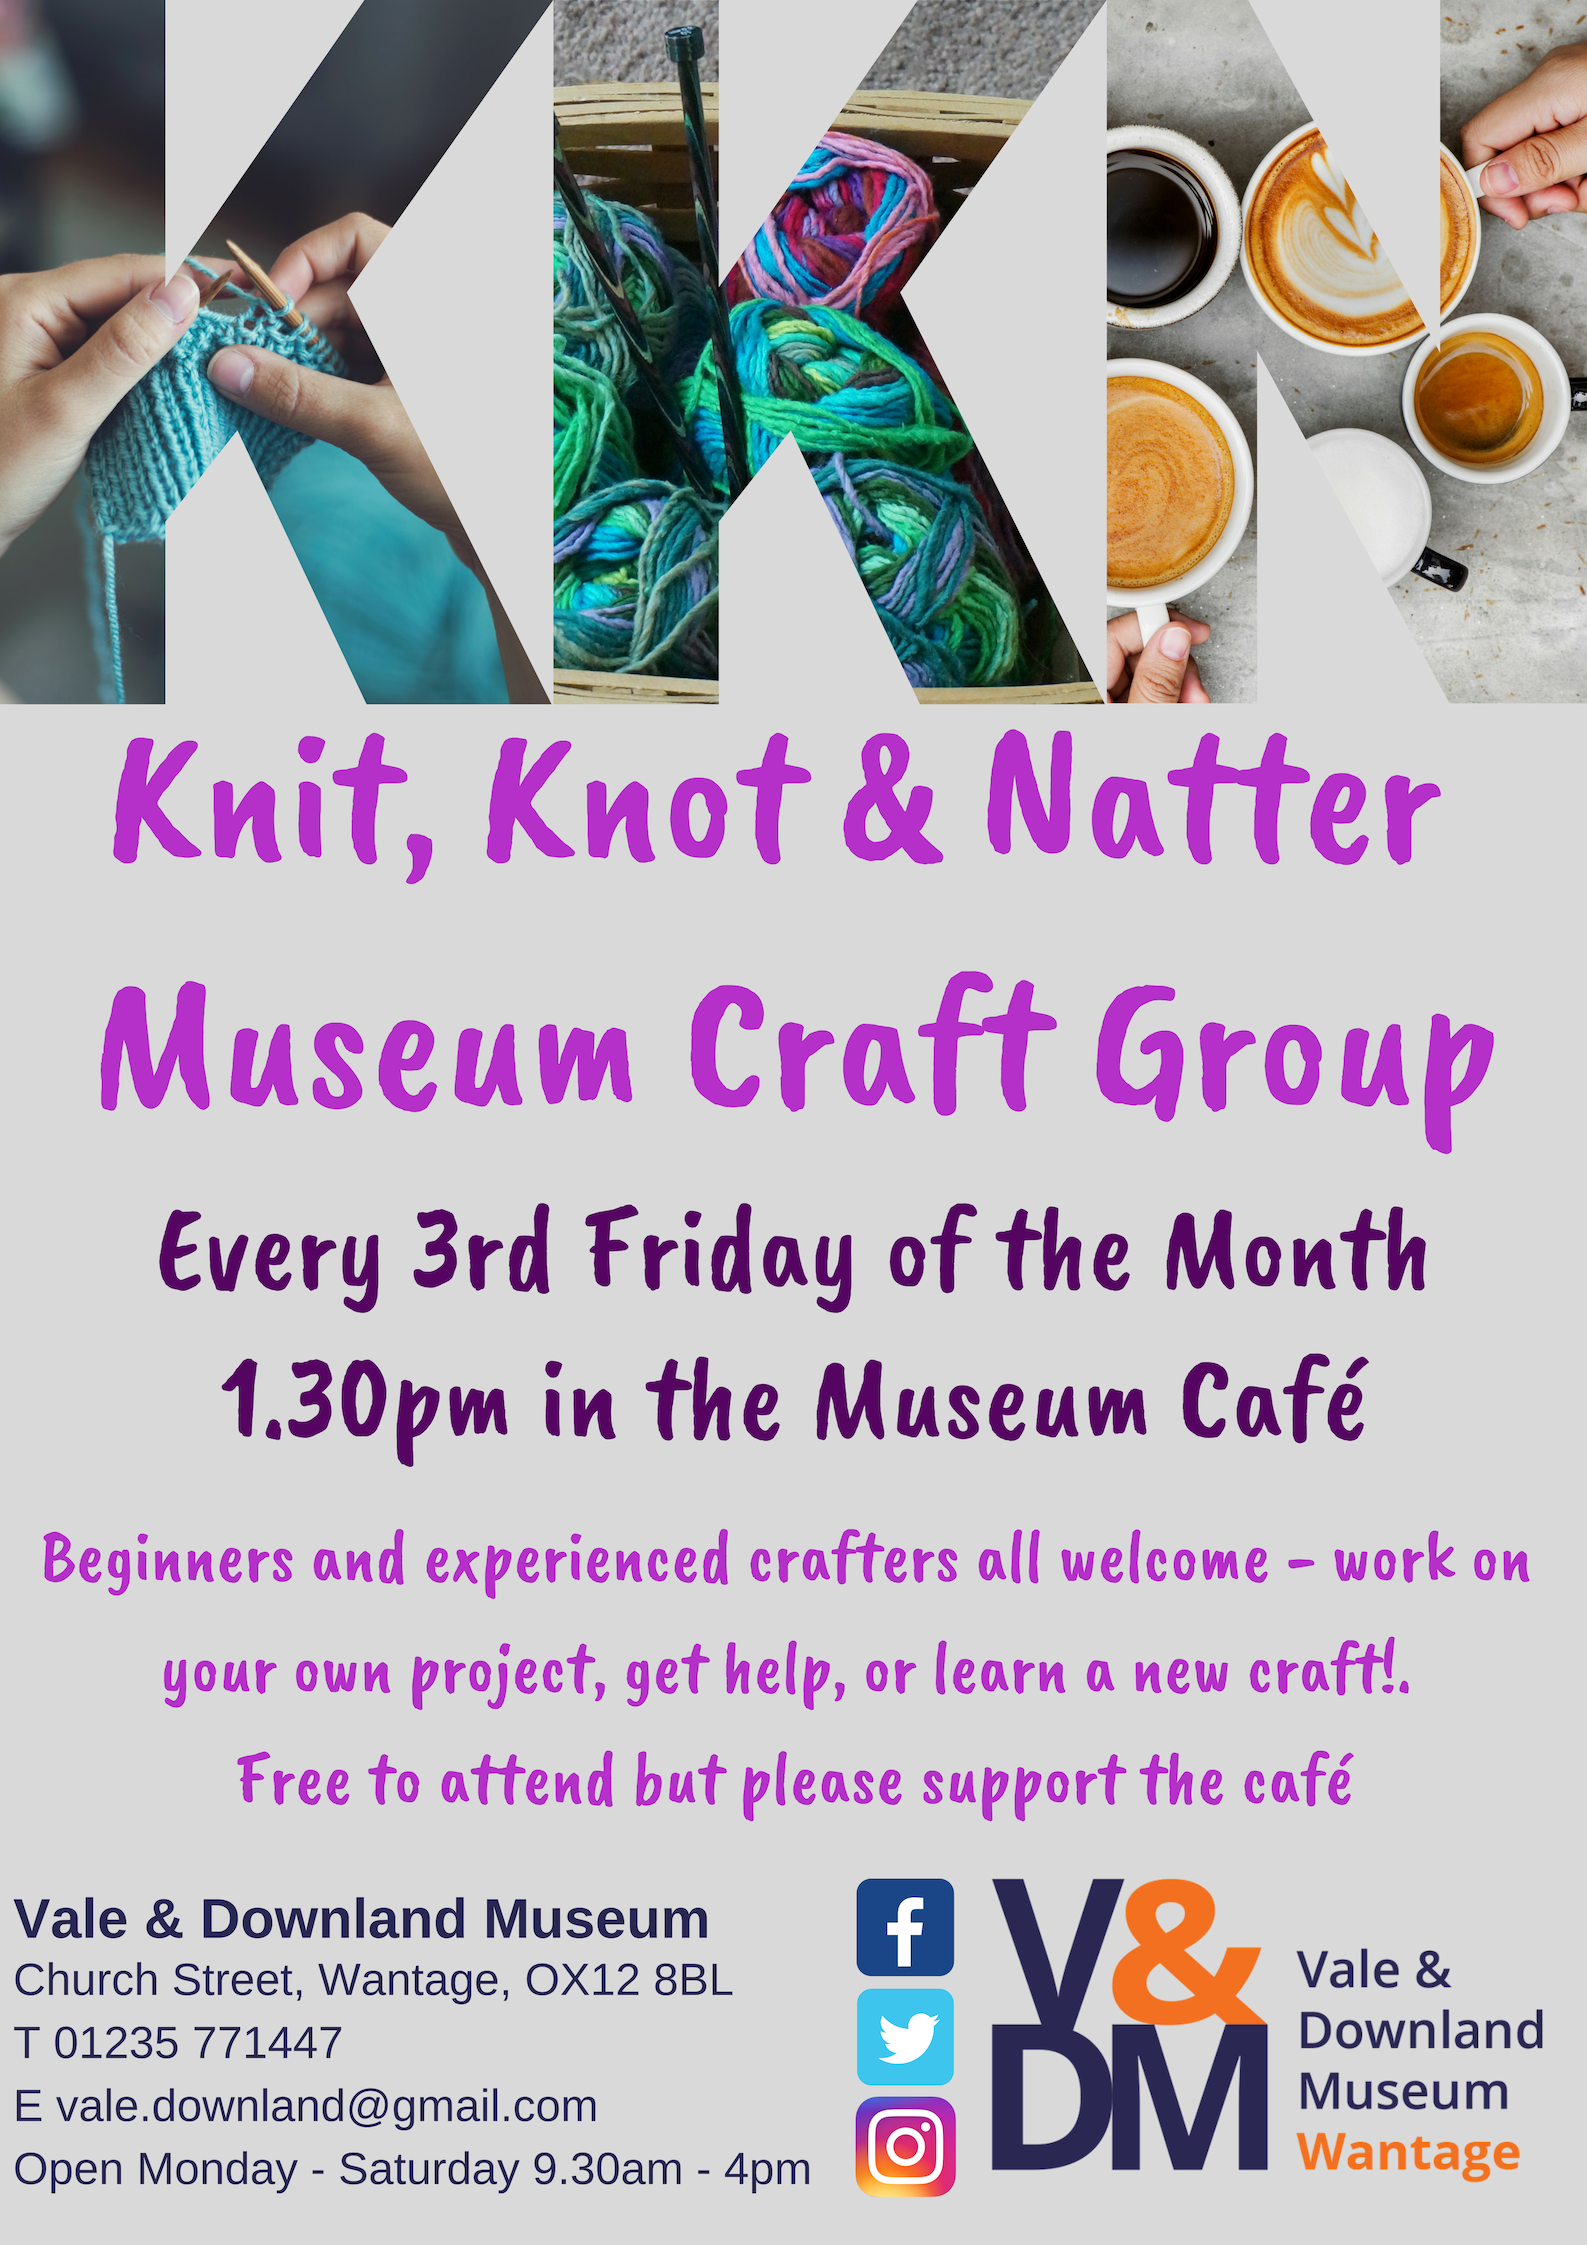 Knit, Knot & Natter Craft Group